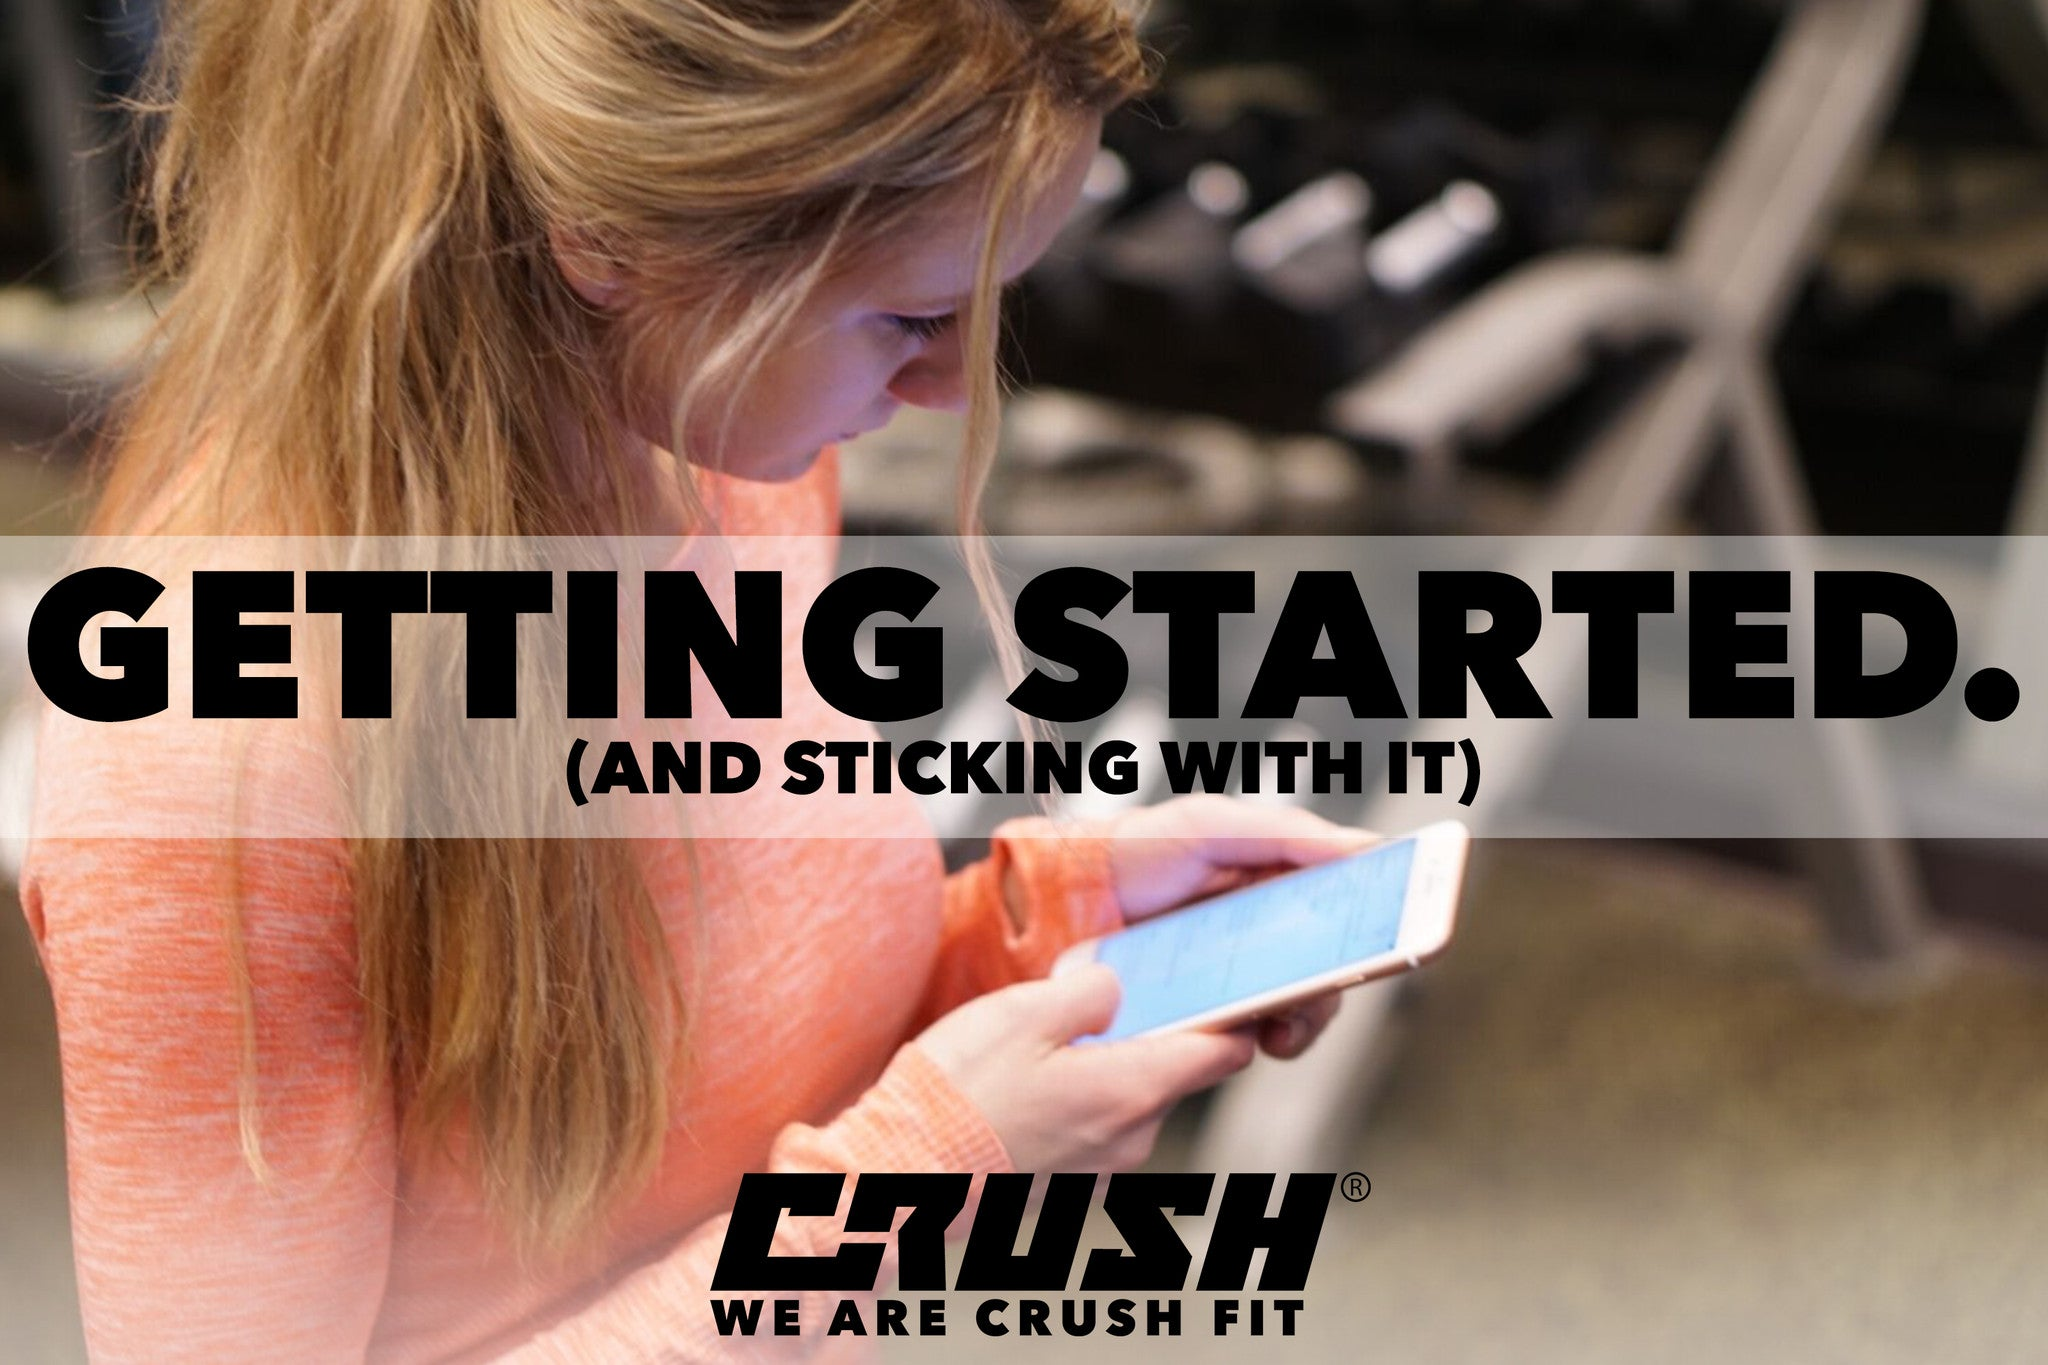 Crush-Finess-Getting-Started